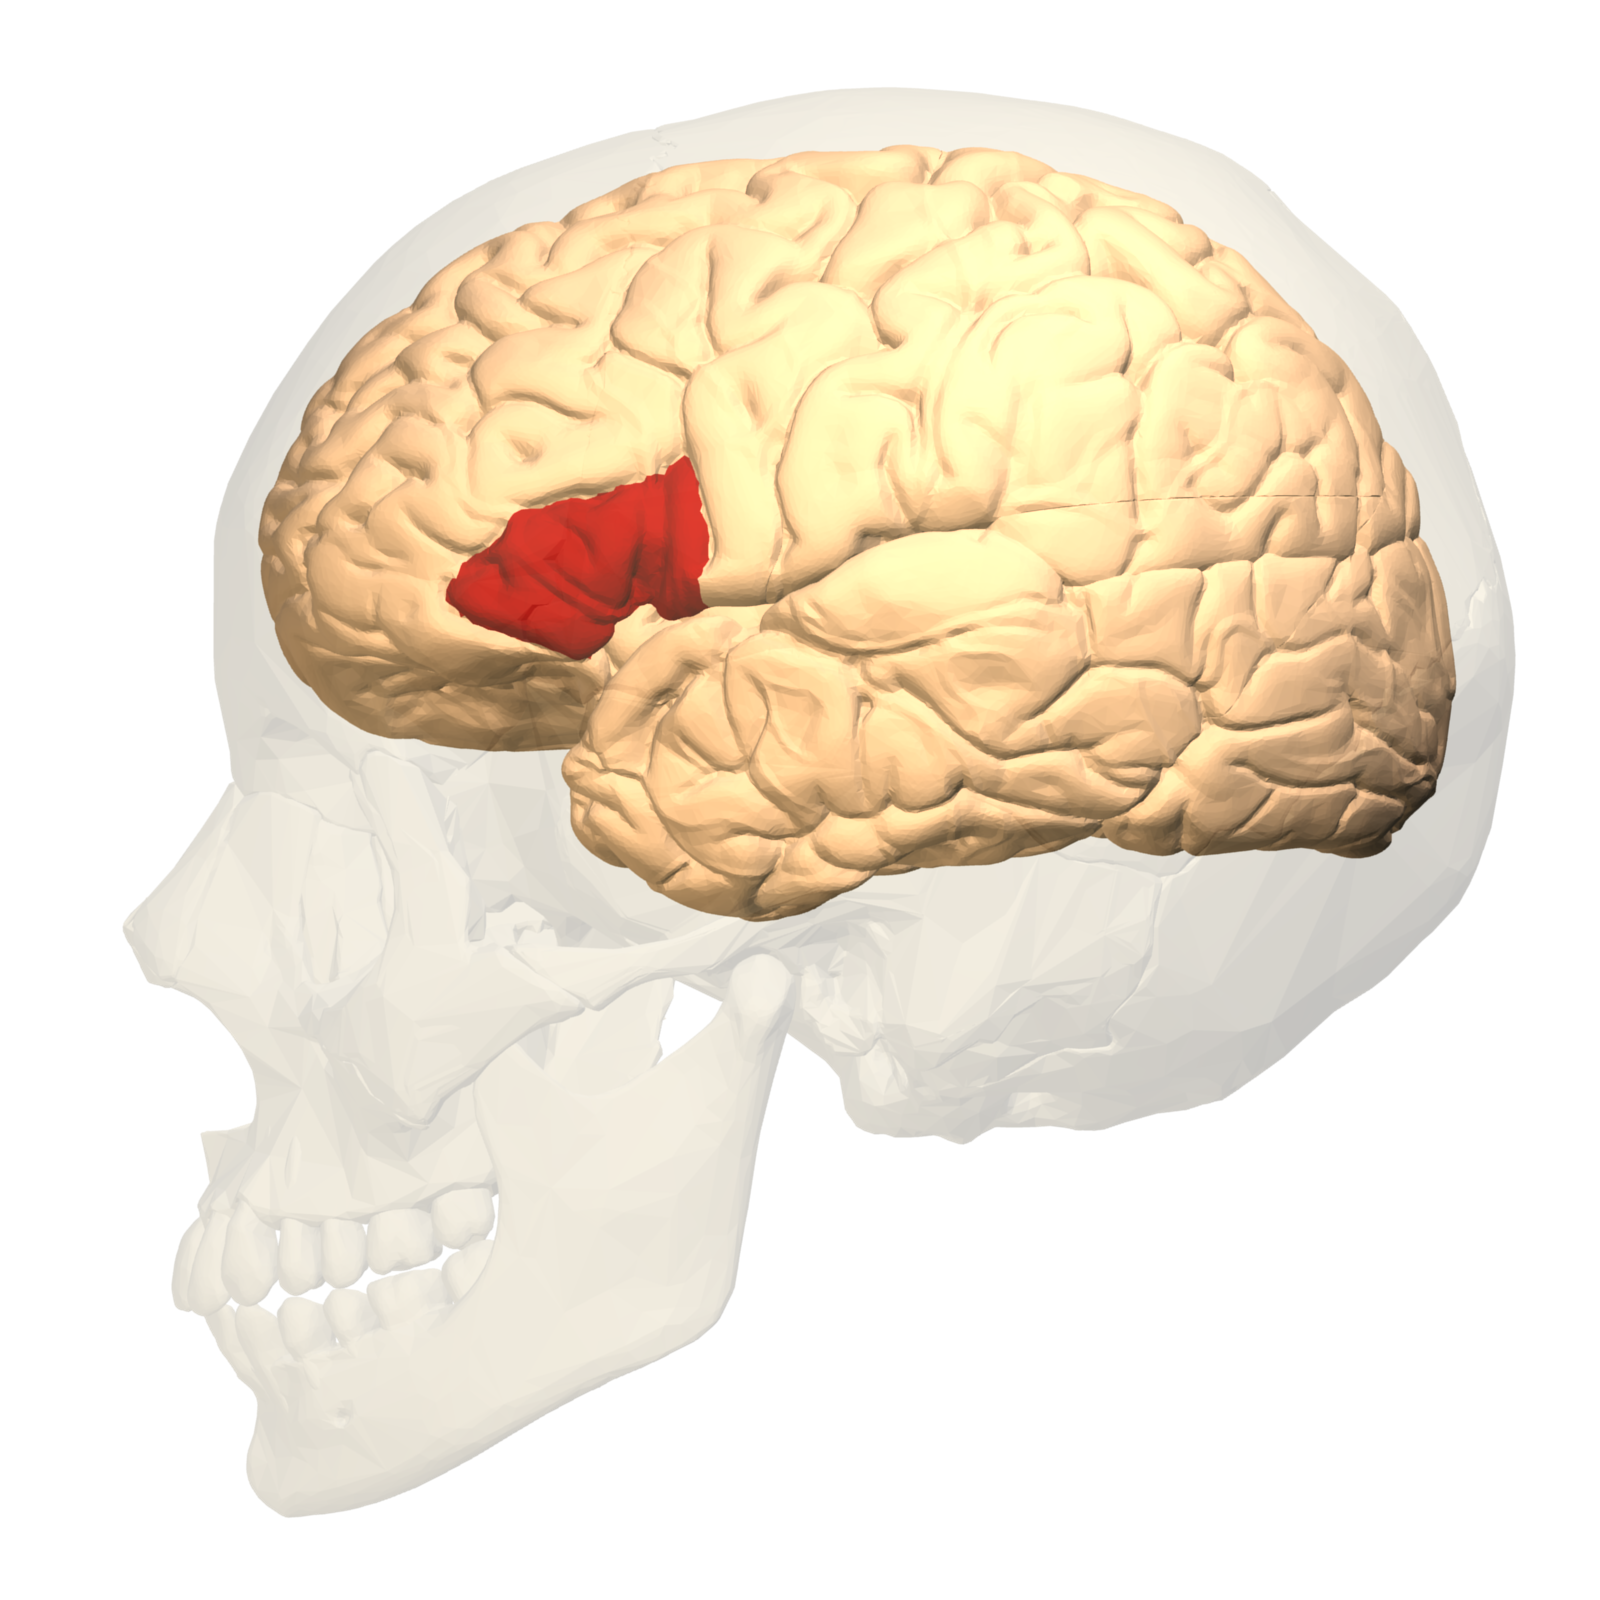 File:Broca\'s area - lateral view.png - Wikimedia Commons